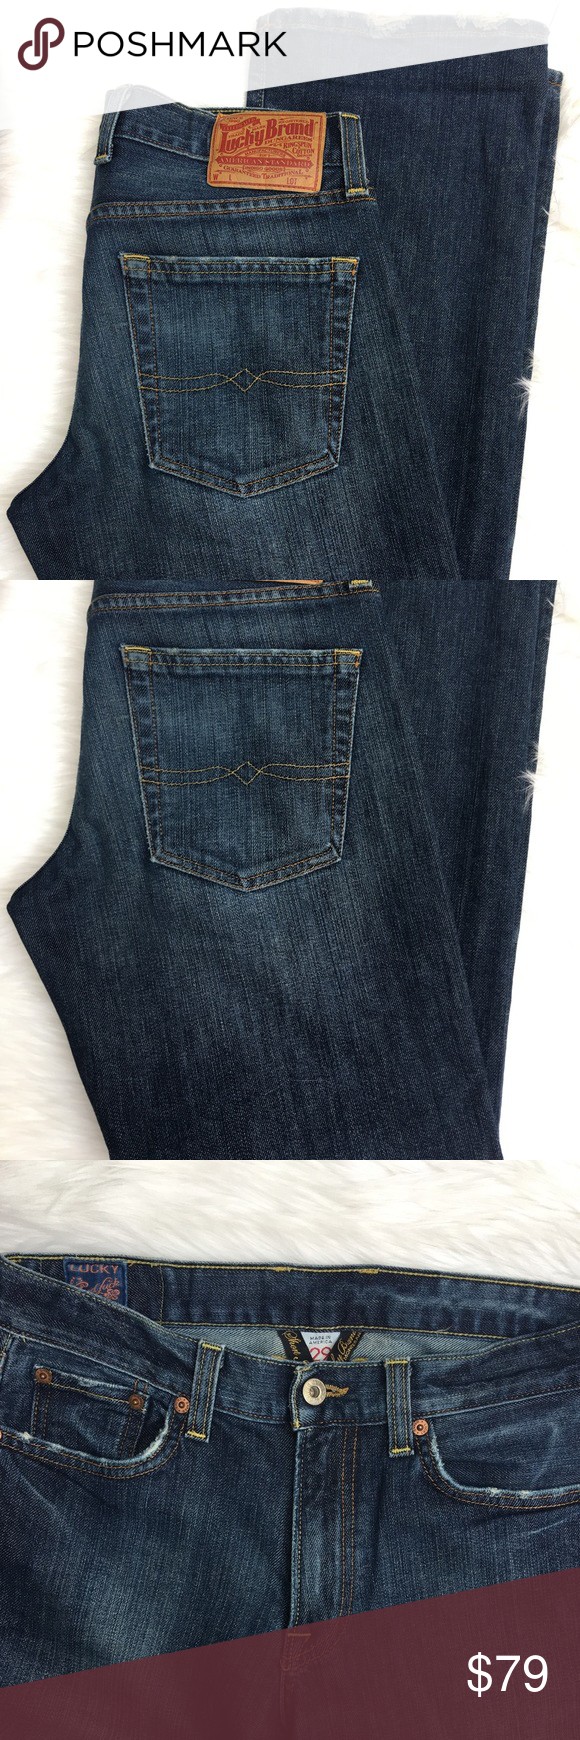 """Lucky Brand Denim Jeans Luck Brand Denim Jeans - Vintage Straight  Zipper Front  Inseam: 29""""  Machine wash: cold/ tumble dry low Condition: no rips no stains   ❌no holds ❌no trades (J) Lucky Brand Jeans"""